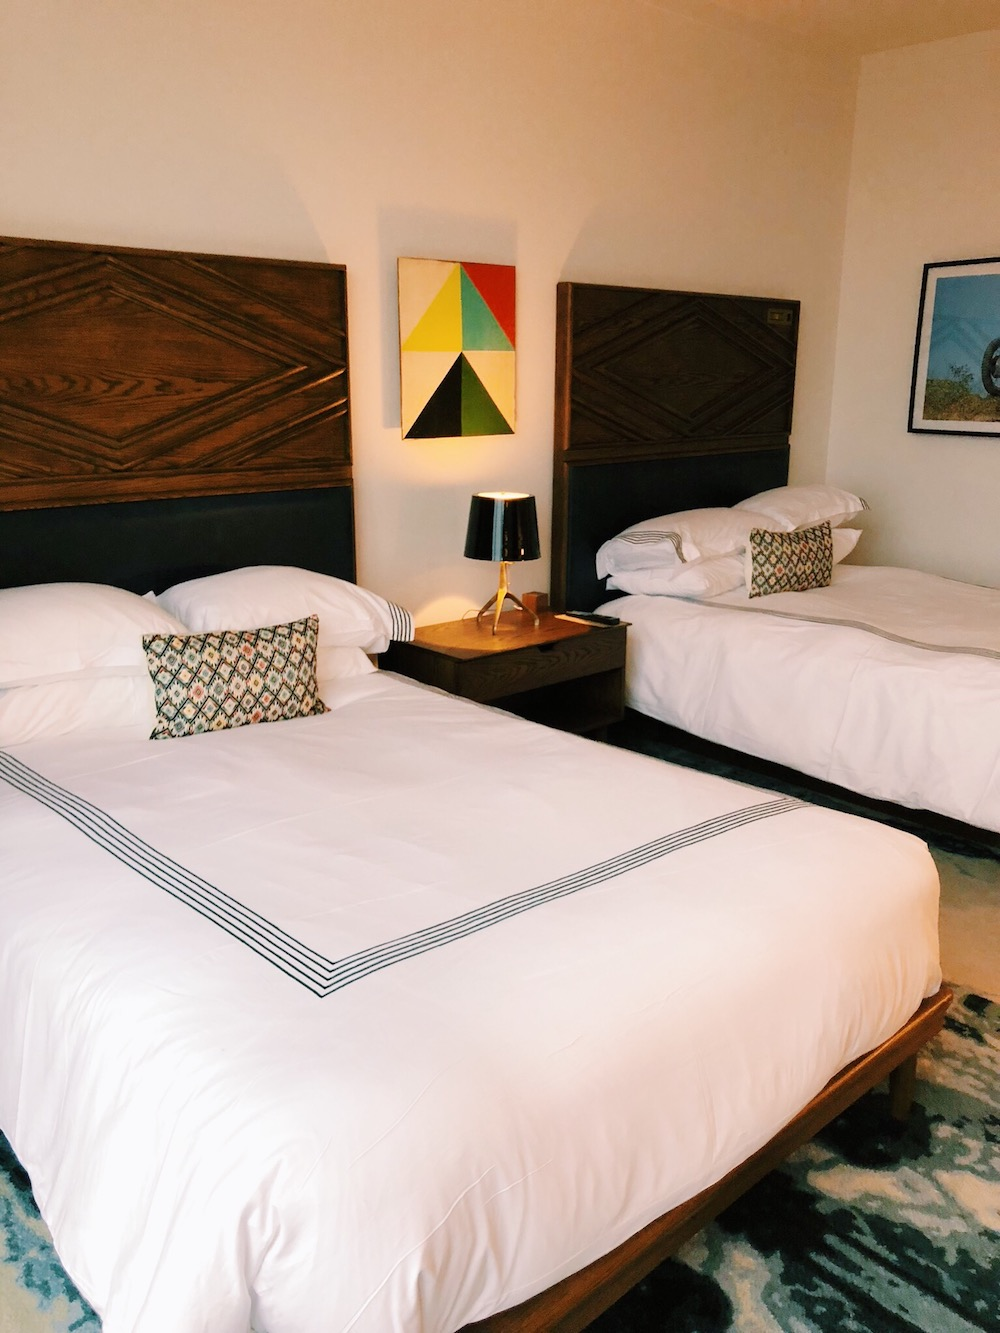 Beds at Thompson Guestroom